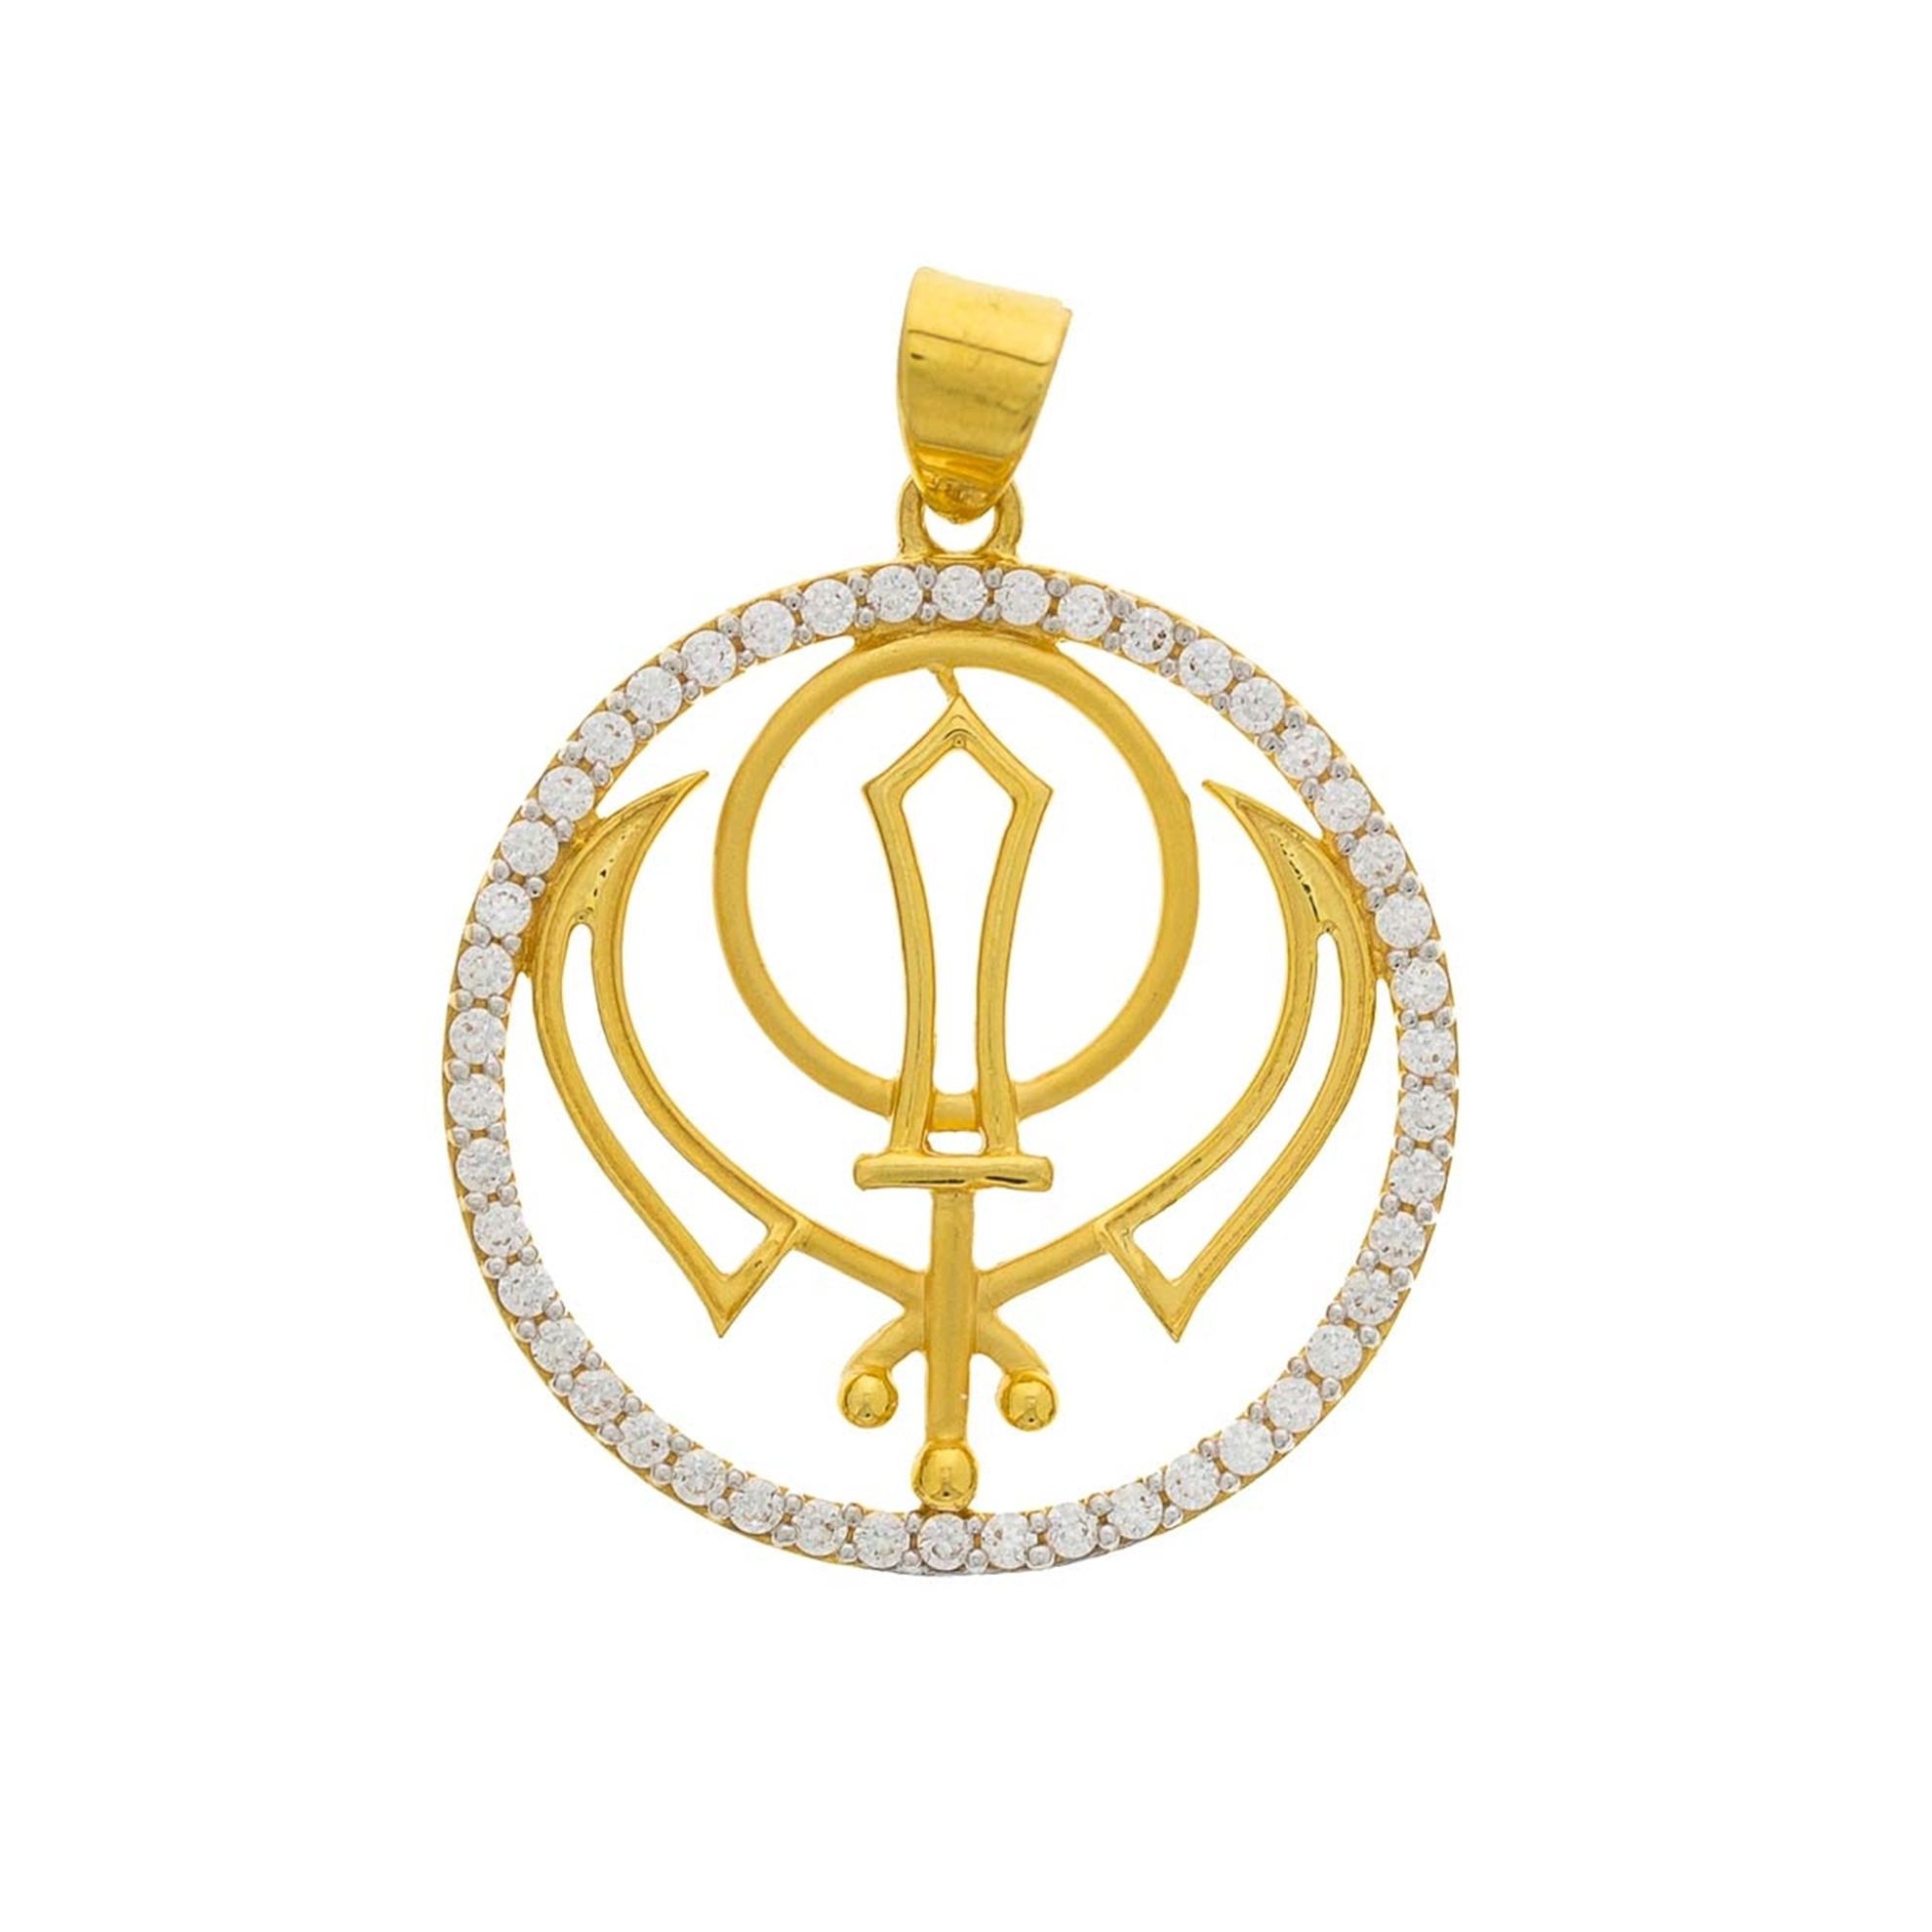 Regal jewels inc 22kt gold pendant picture of khanda strength mozeypictures Images